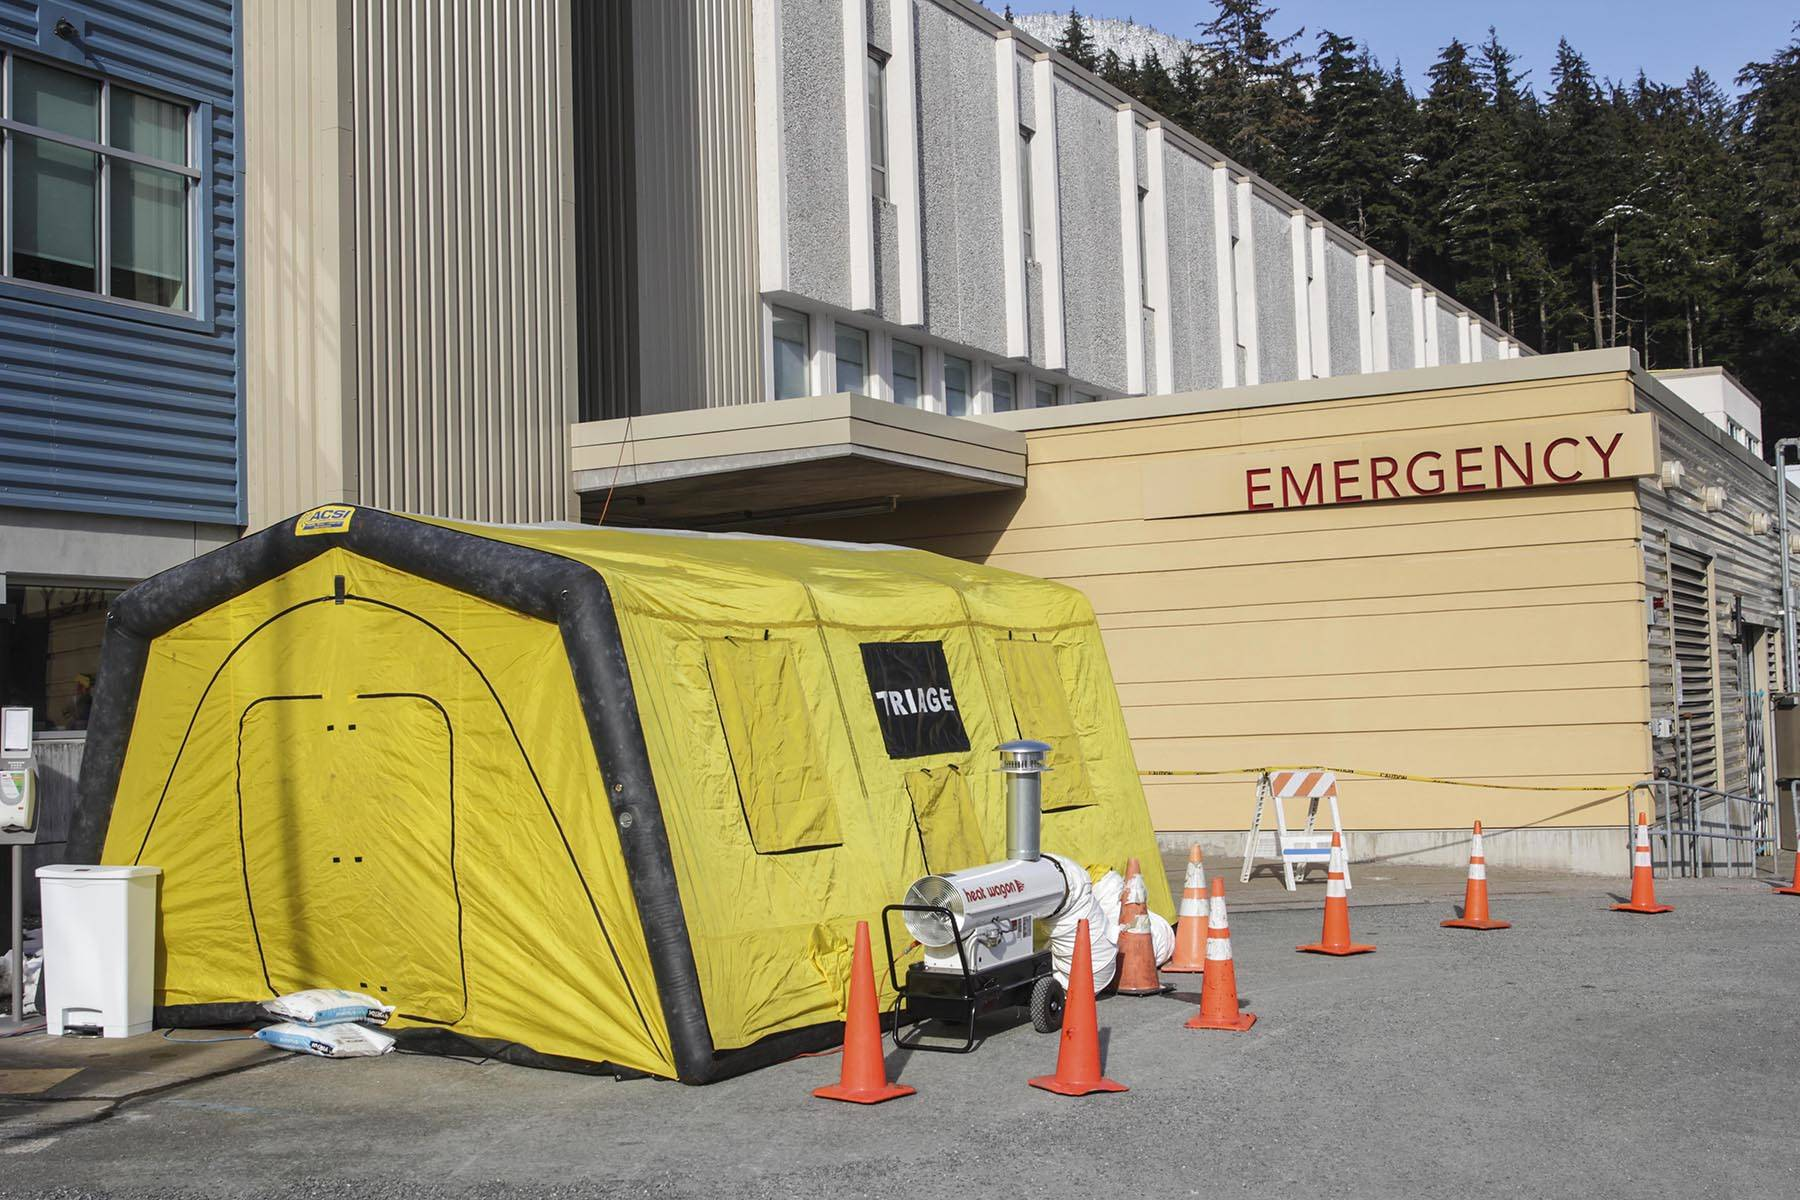 Bartlett Regional Hospital is one of many organizations in Juneau adjusting its operating procedures to deal with the risk of outbreak of the coronavirus. (Michael S. Lockett | Juneau Empire)